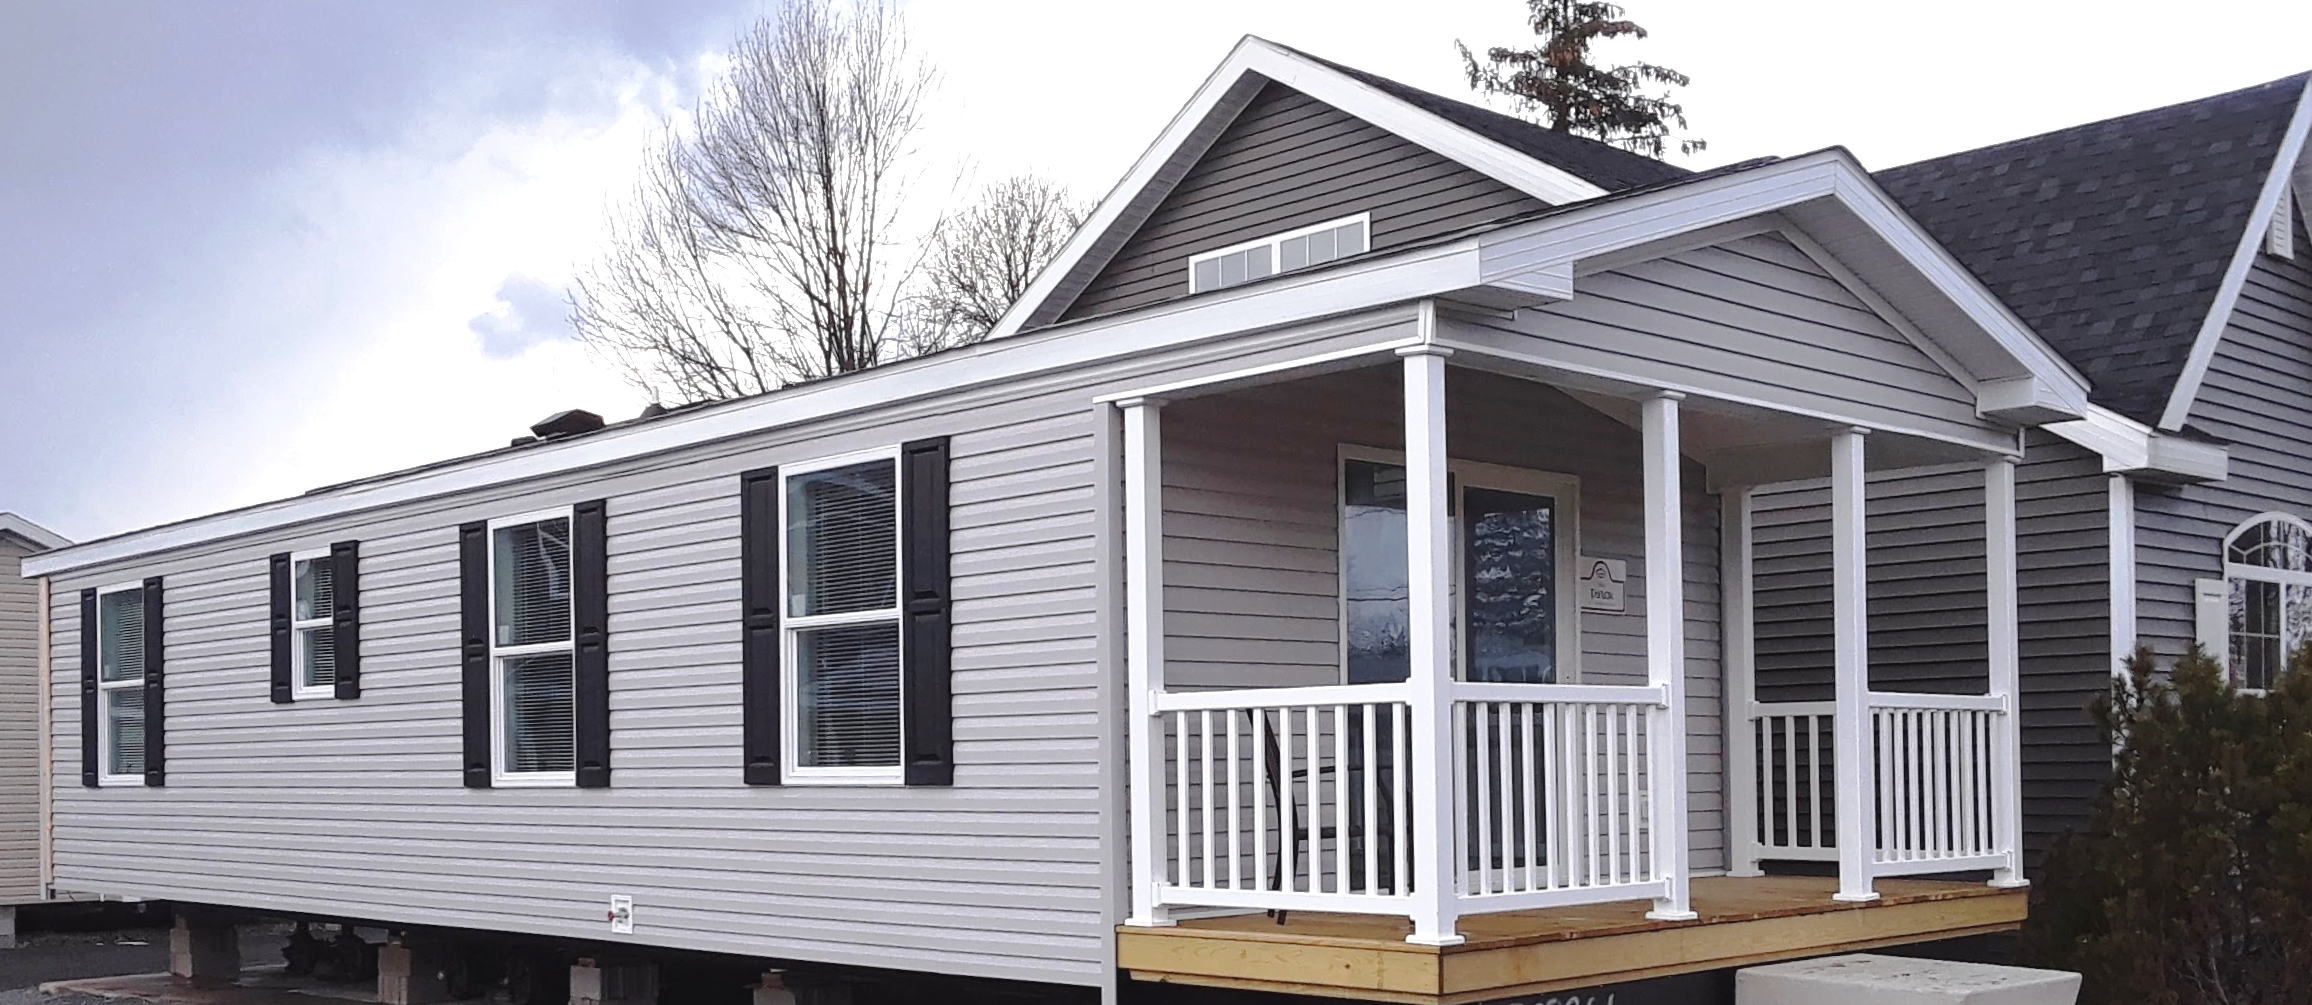 The Arkansas ~ The Tiny House! Sold Can be Reordered